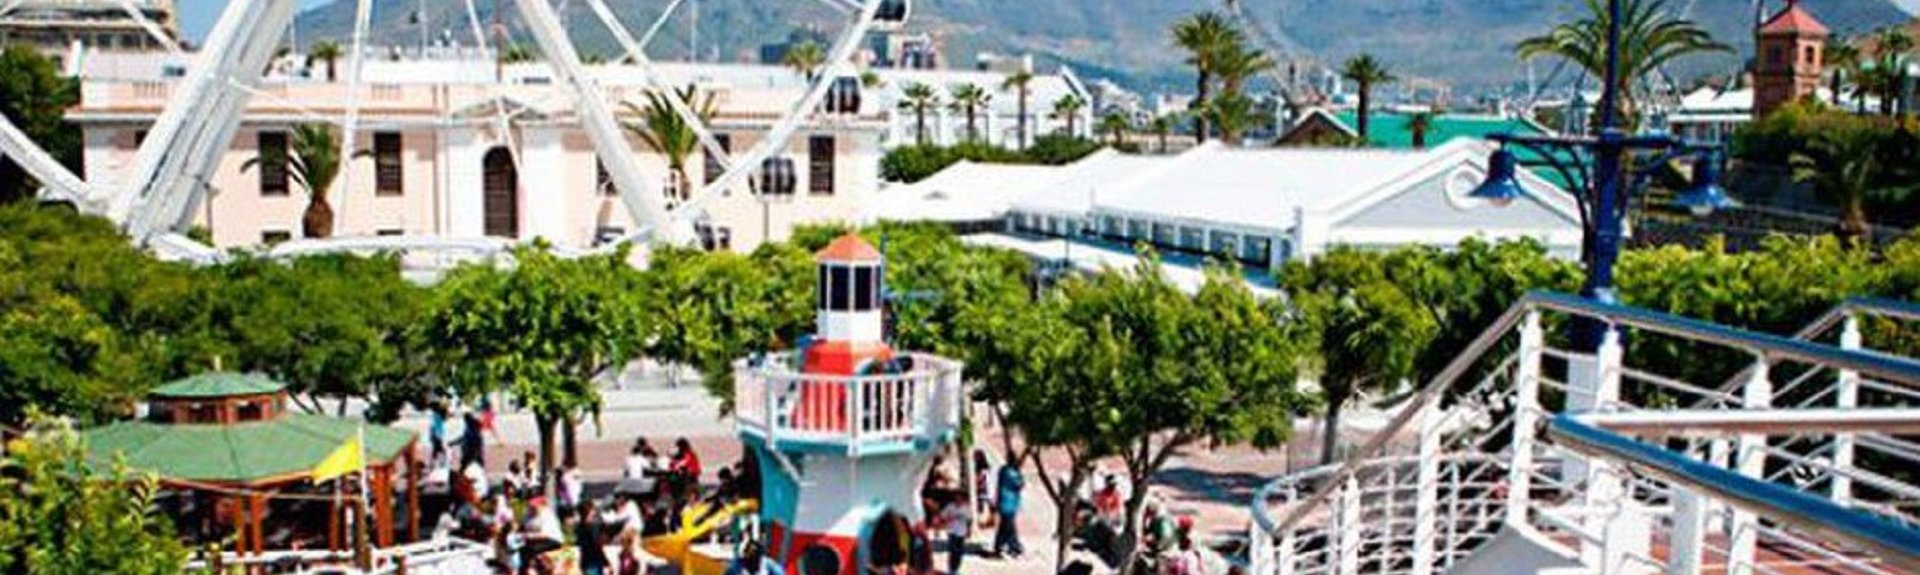 V&A Waterfront | Cape Town | Things to do With kids